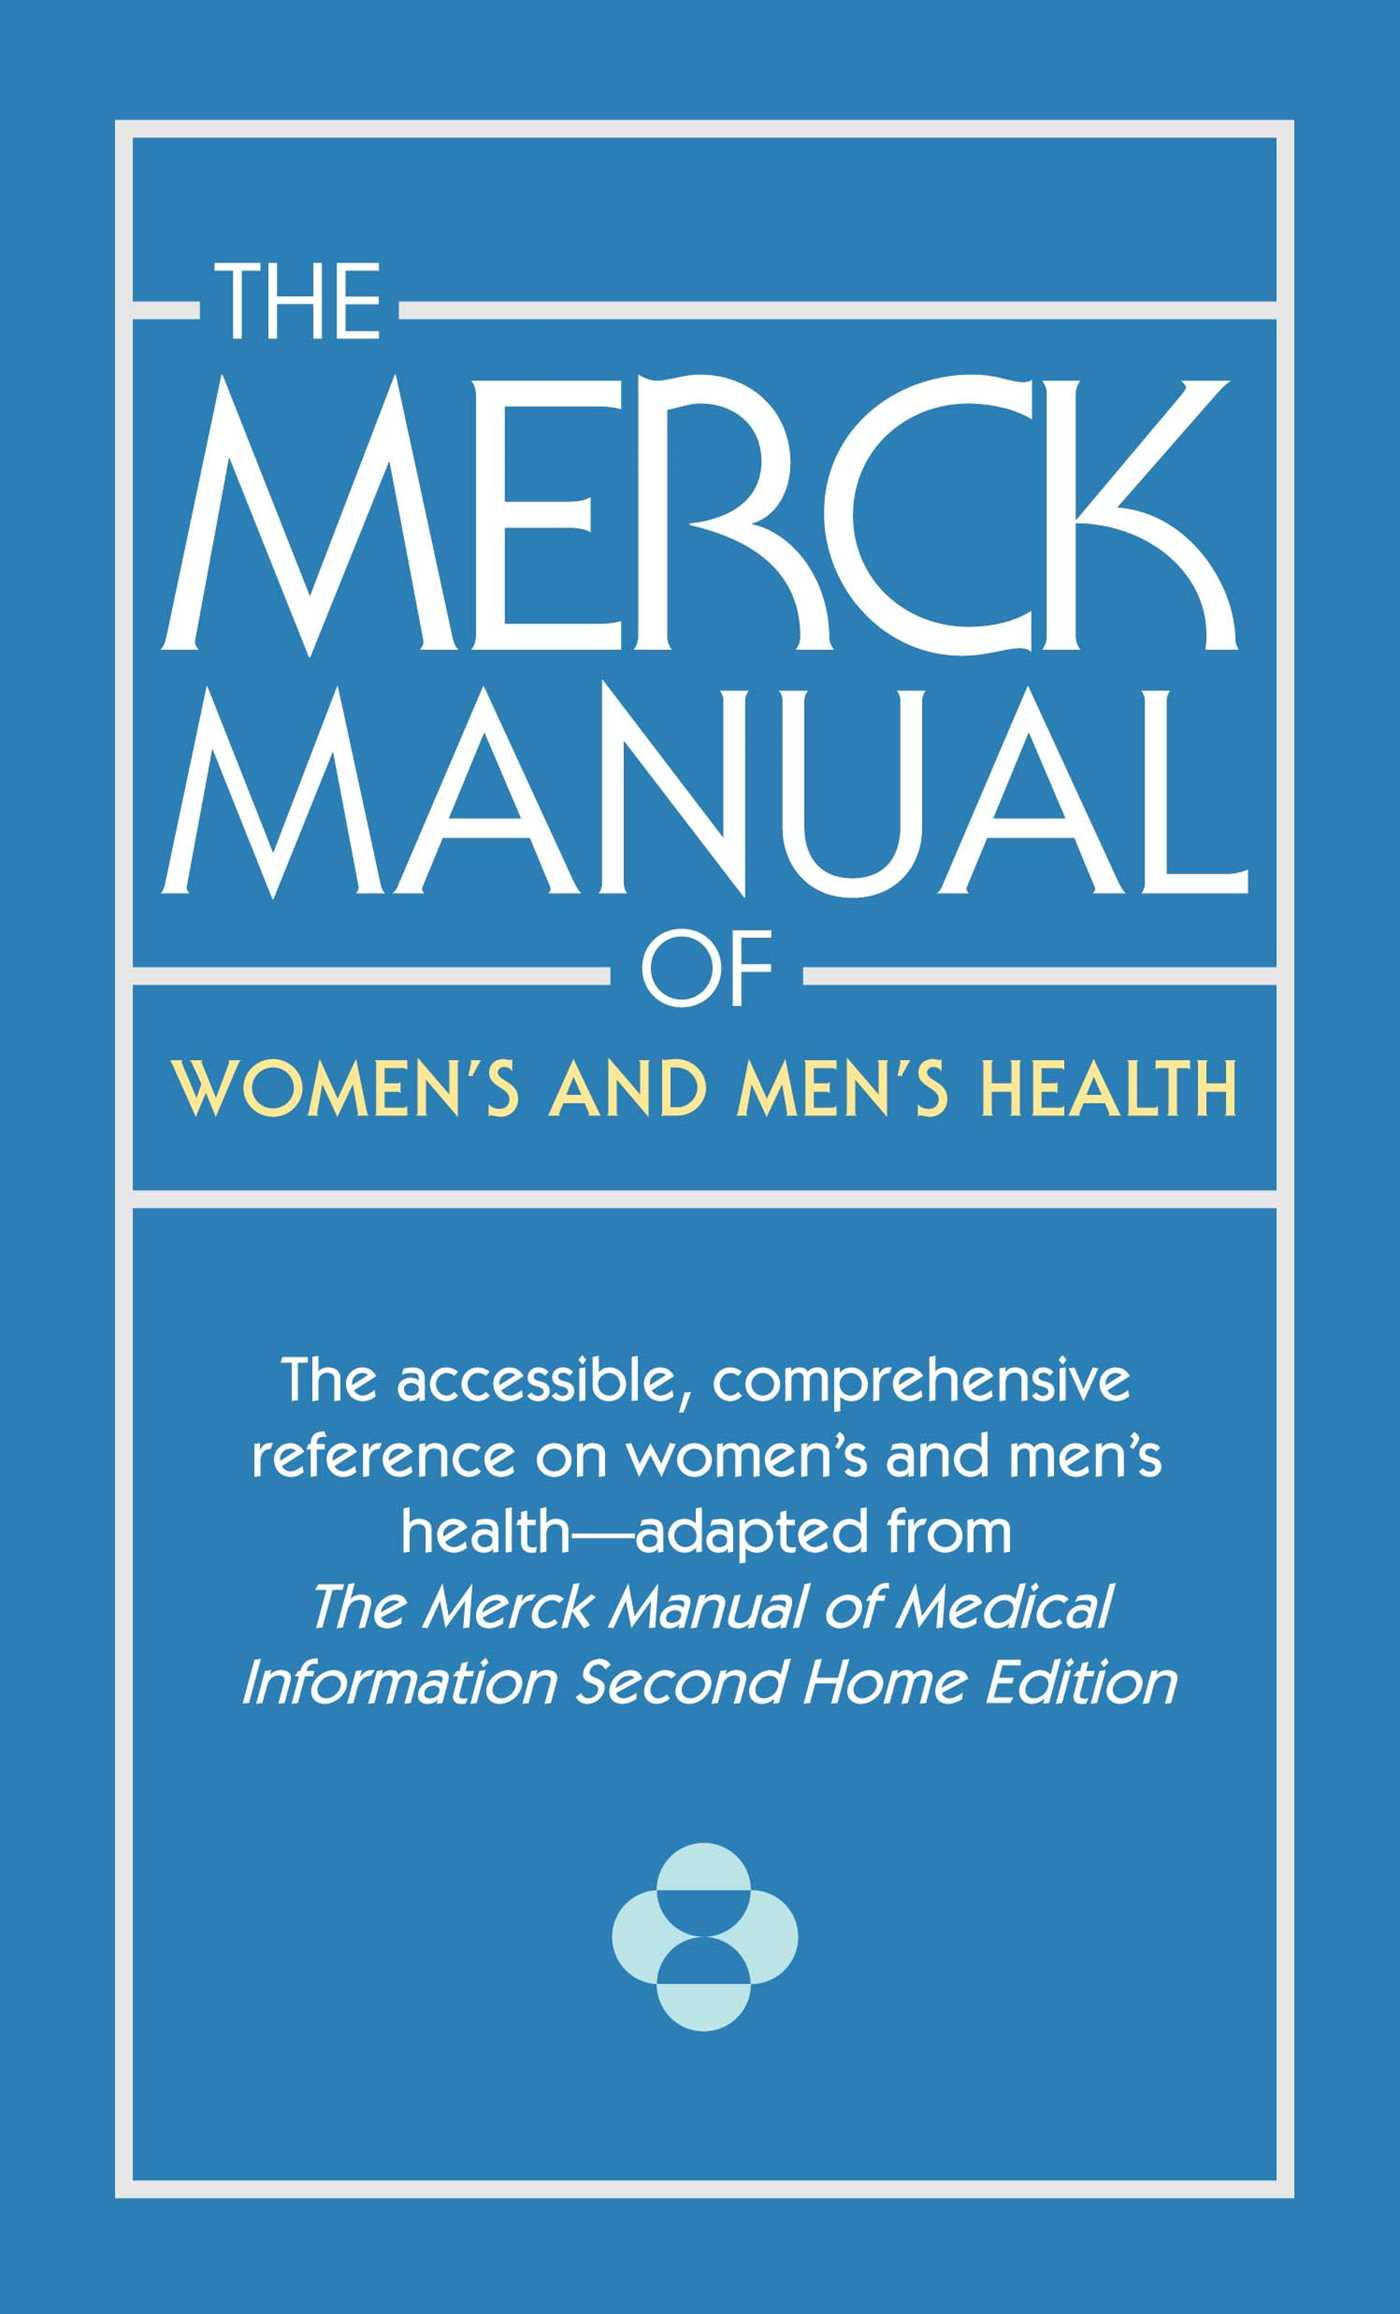 Book Cover Image (jpg): The Merck Manual of Women's and Men's Health